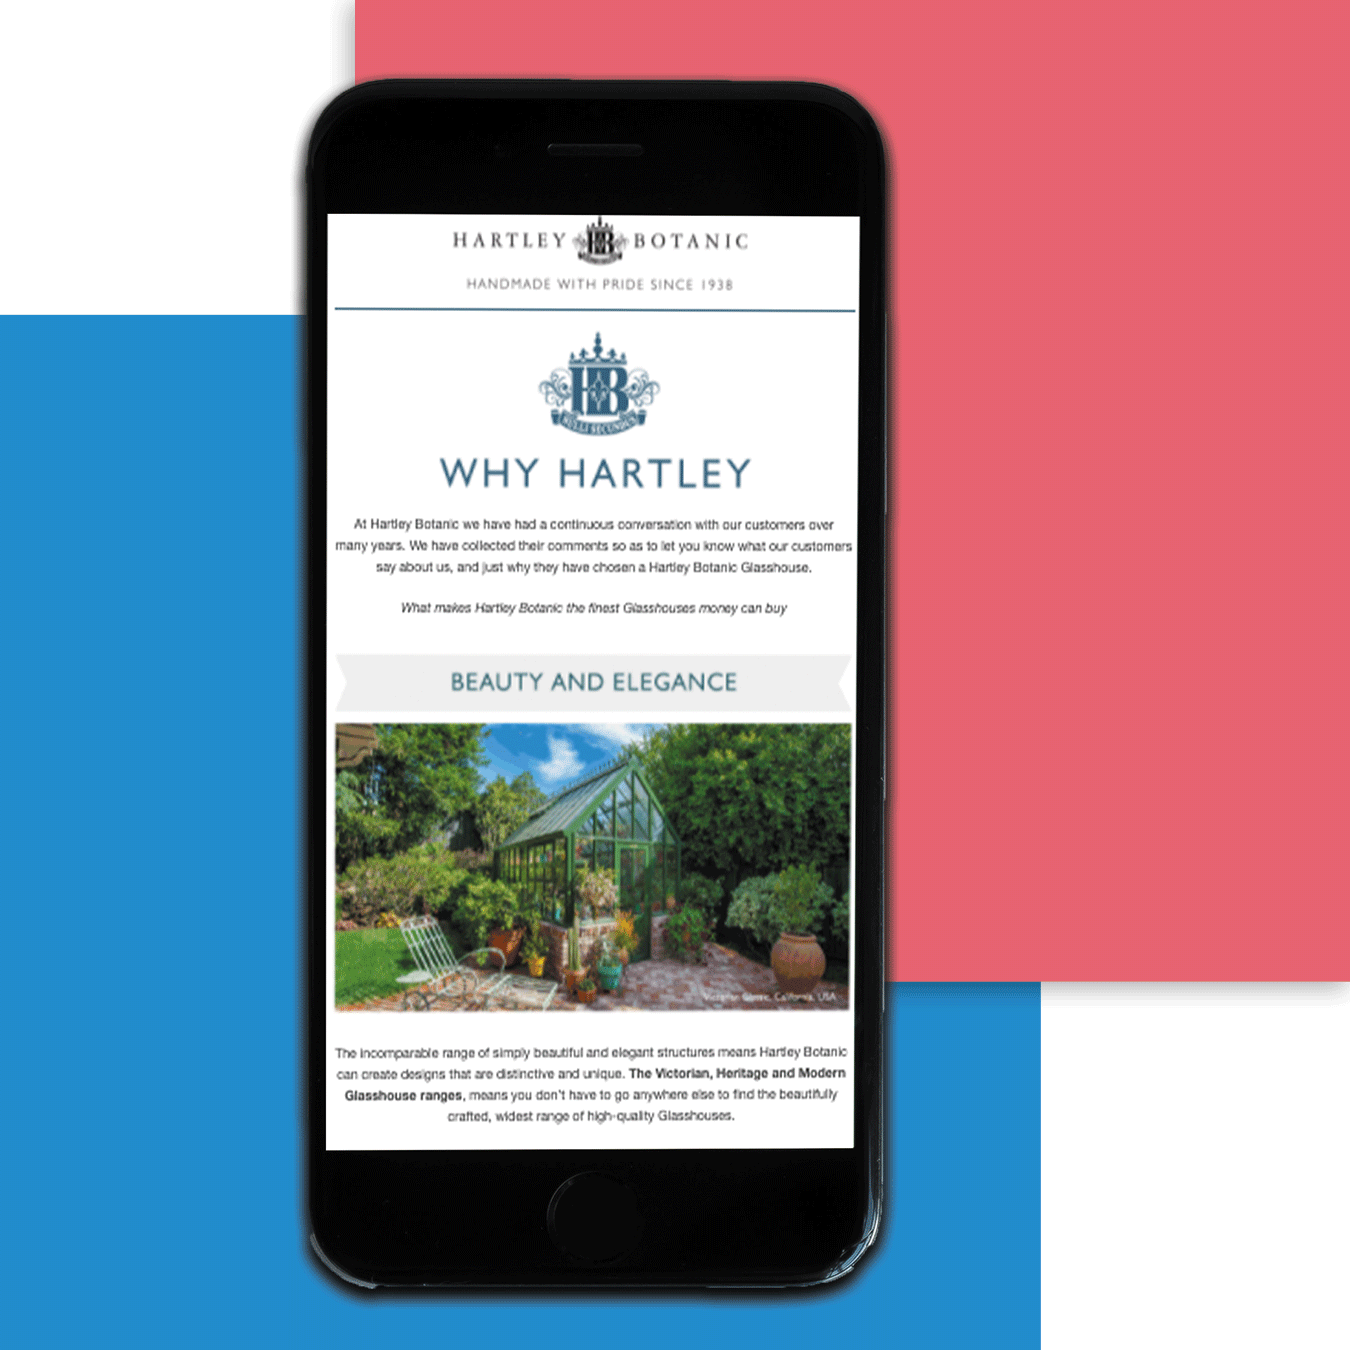 The Hartley Botanic website displayed on a mobile device